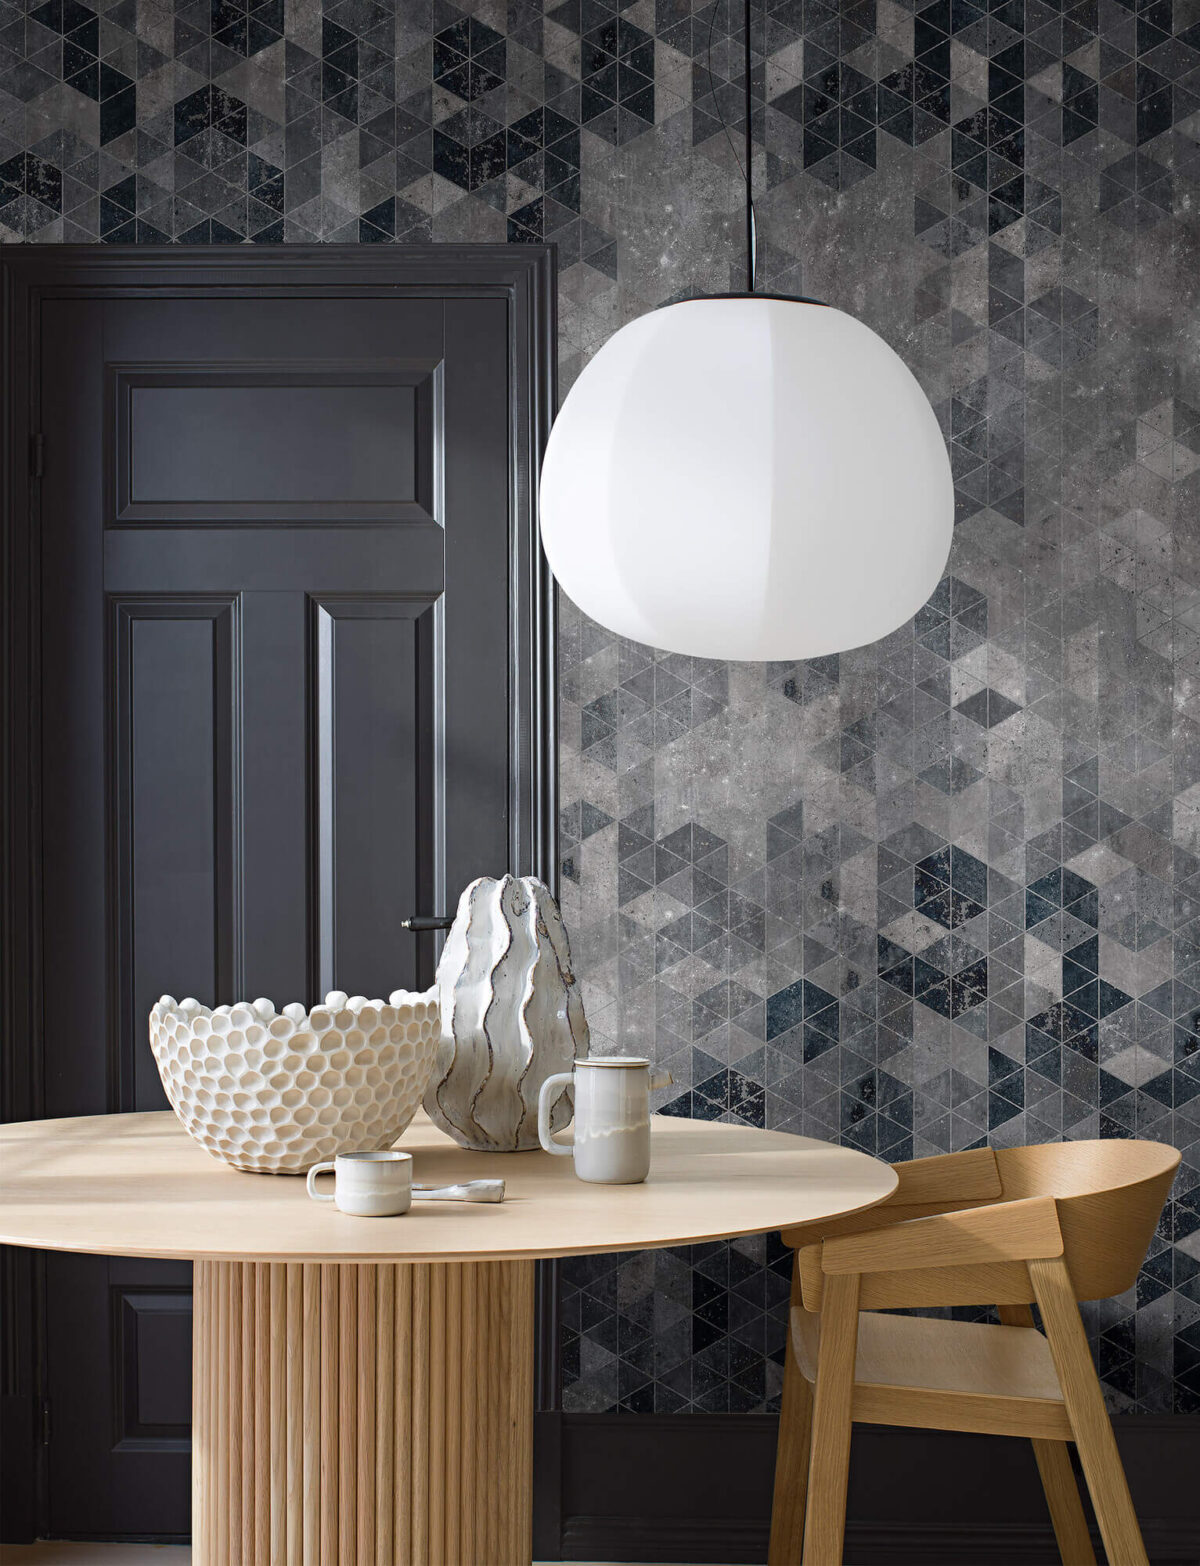 Graphic world - Graphic Wall - 8847 -